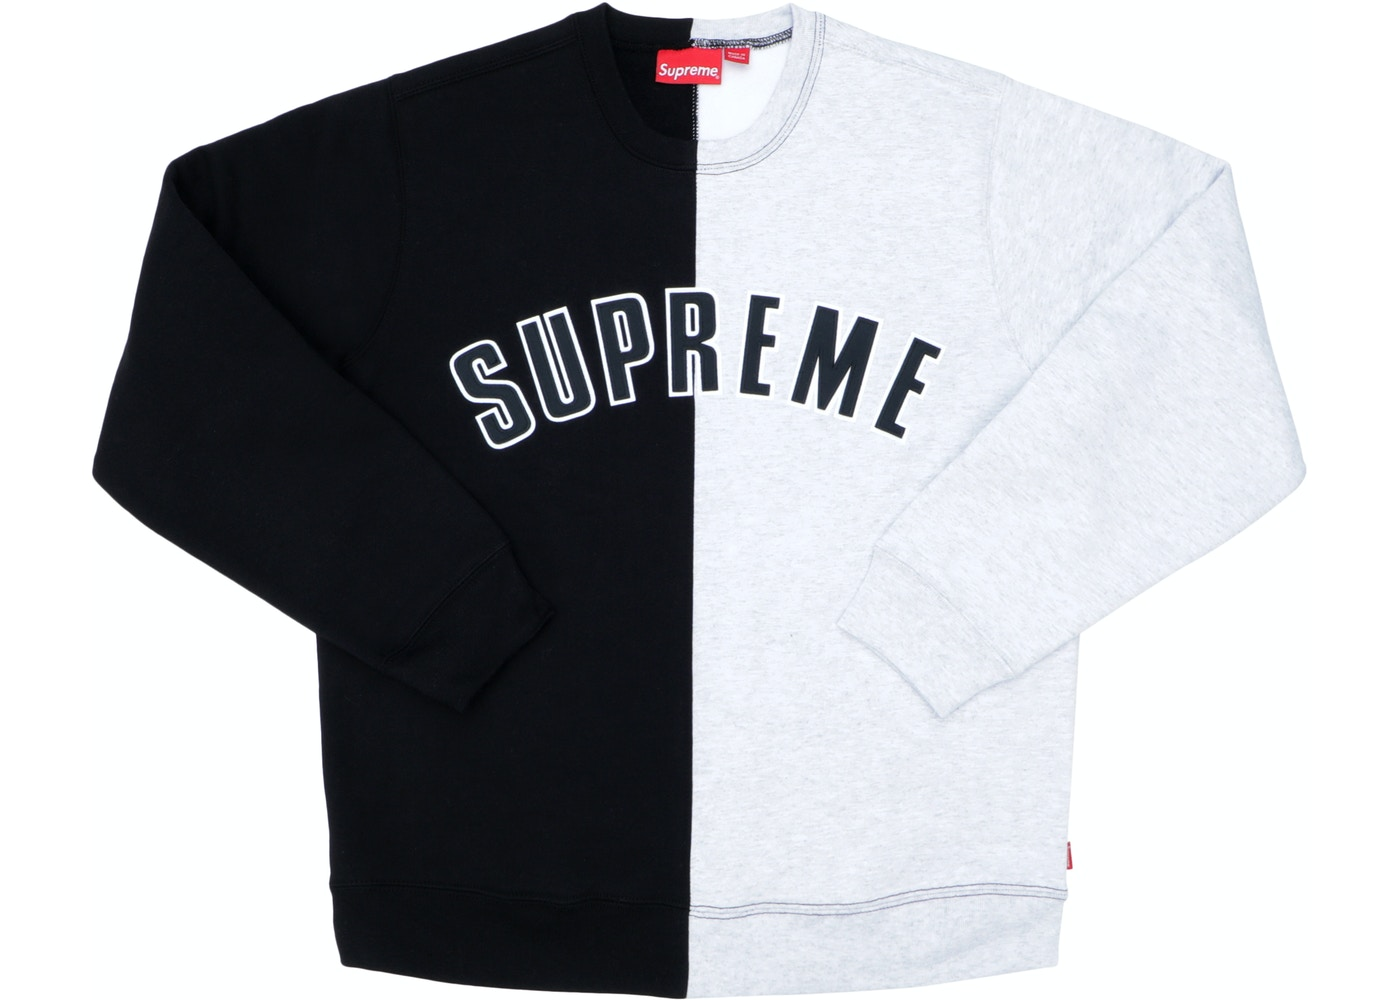 88cea5095927 Supreme Split Crewneck Sweatshirt Black - FW18